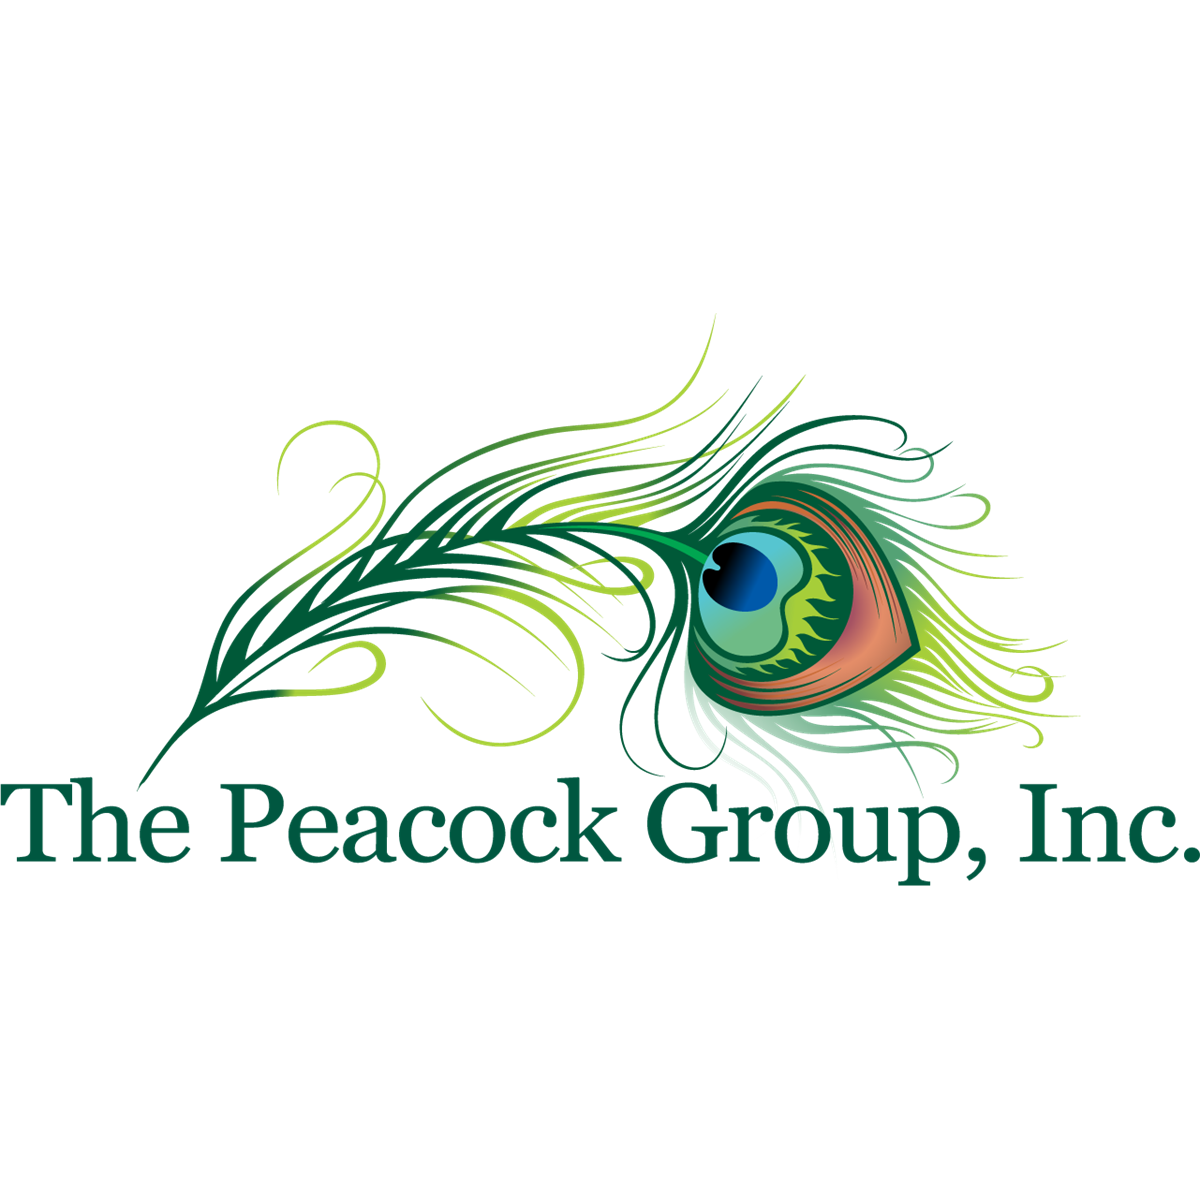 The Peacock Group, Inc.